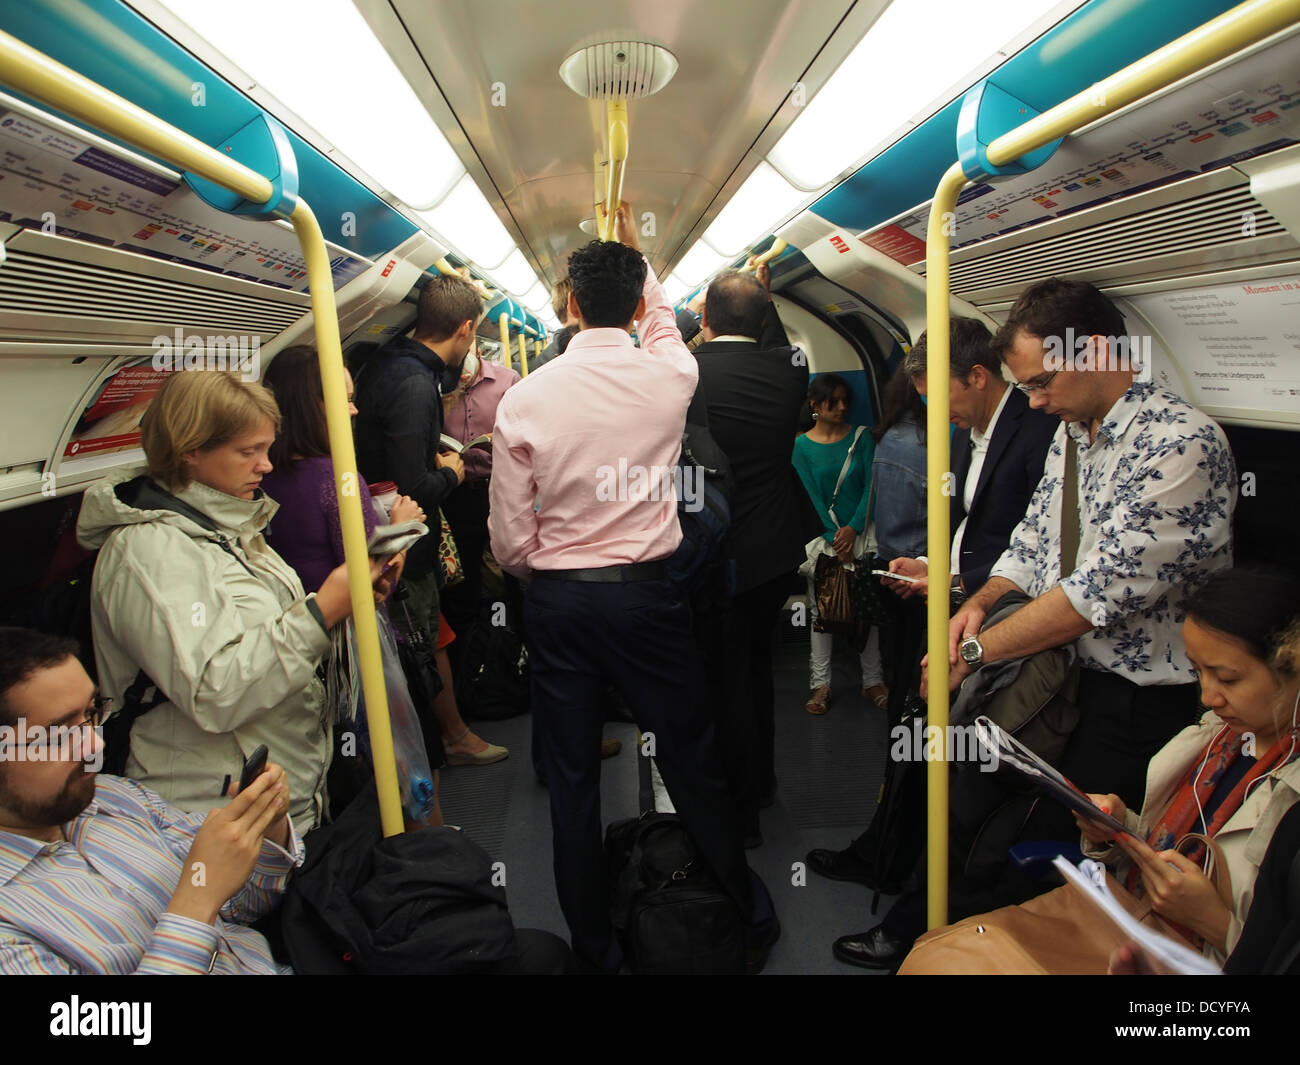 London underground, crowded with commuters - Stock Image